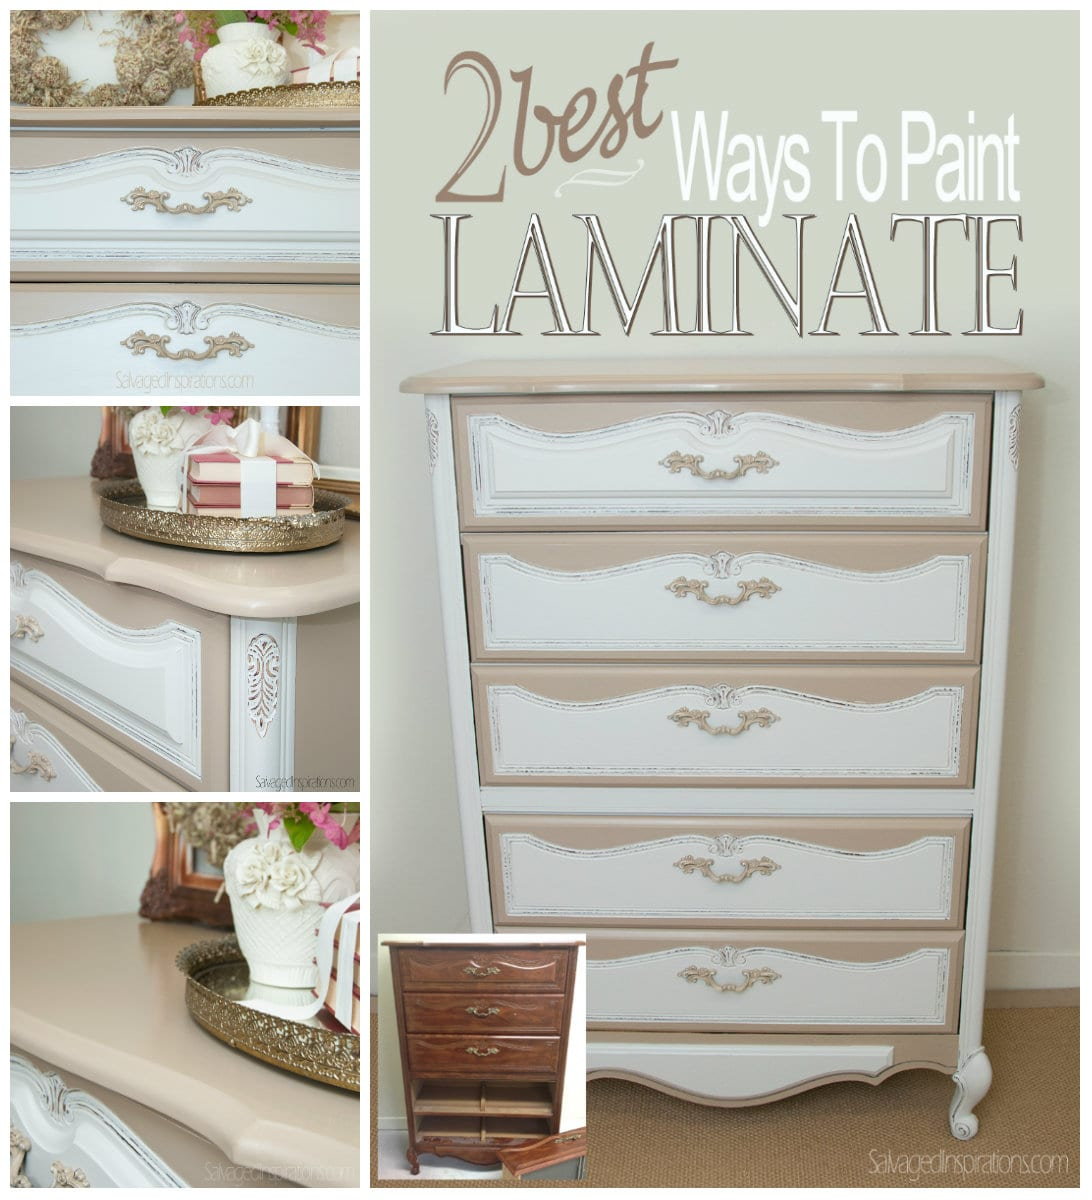 Awesome 2 Best Ways To Paint Laminate Furniture Salvaged Inspirations Interior Design Ideas Jittwwsoteloinfo